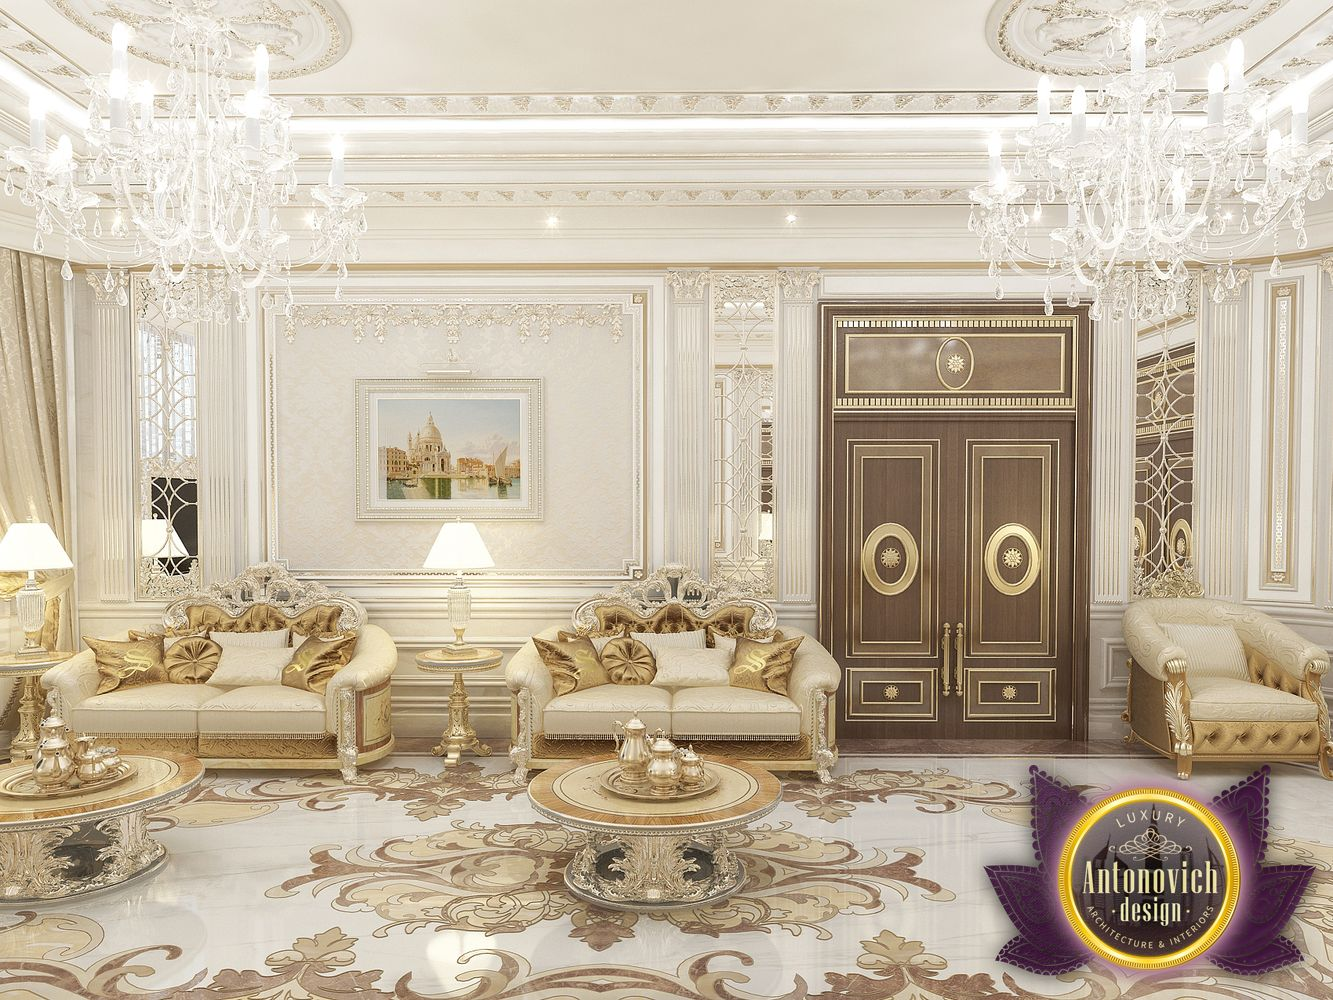 LUXURY ANTONOVICH DESIGN UAE: Living room interior design ...